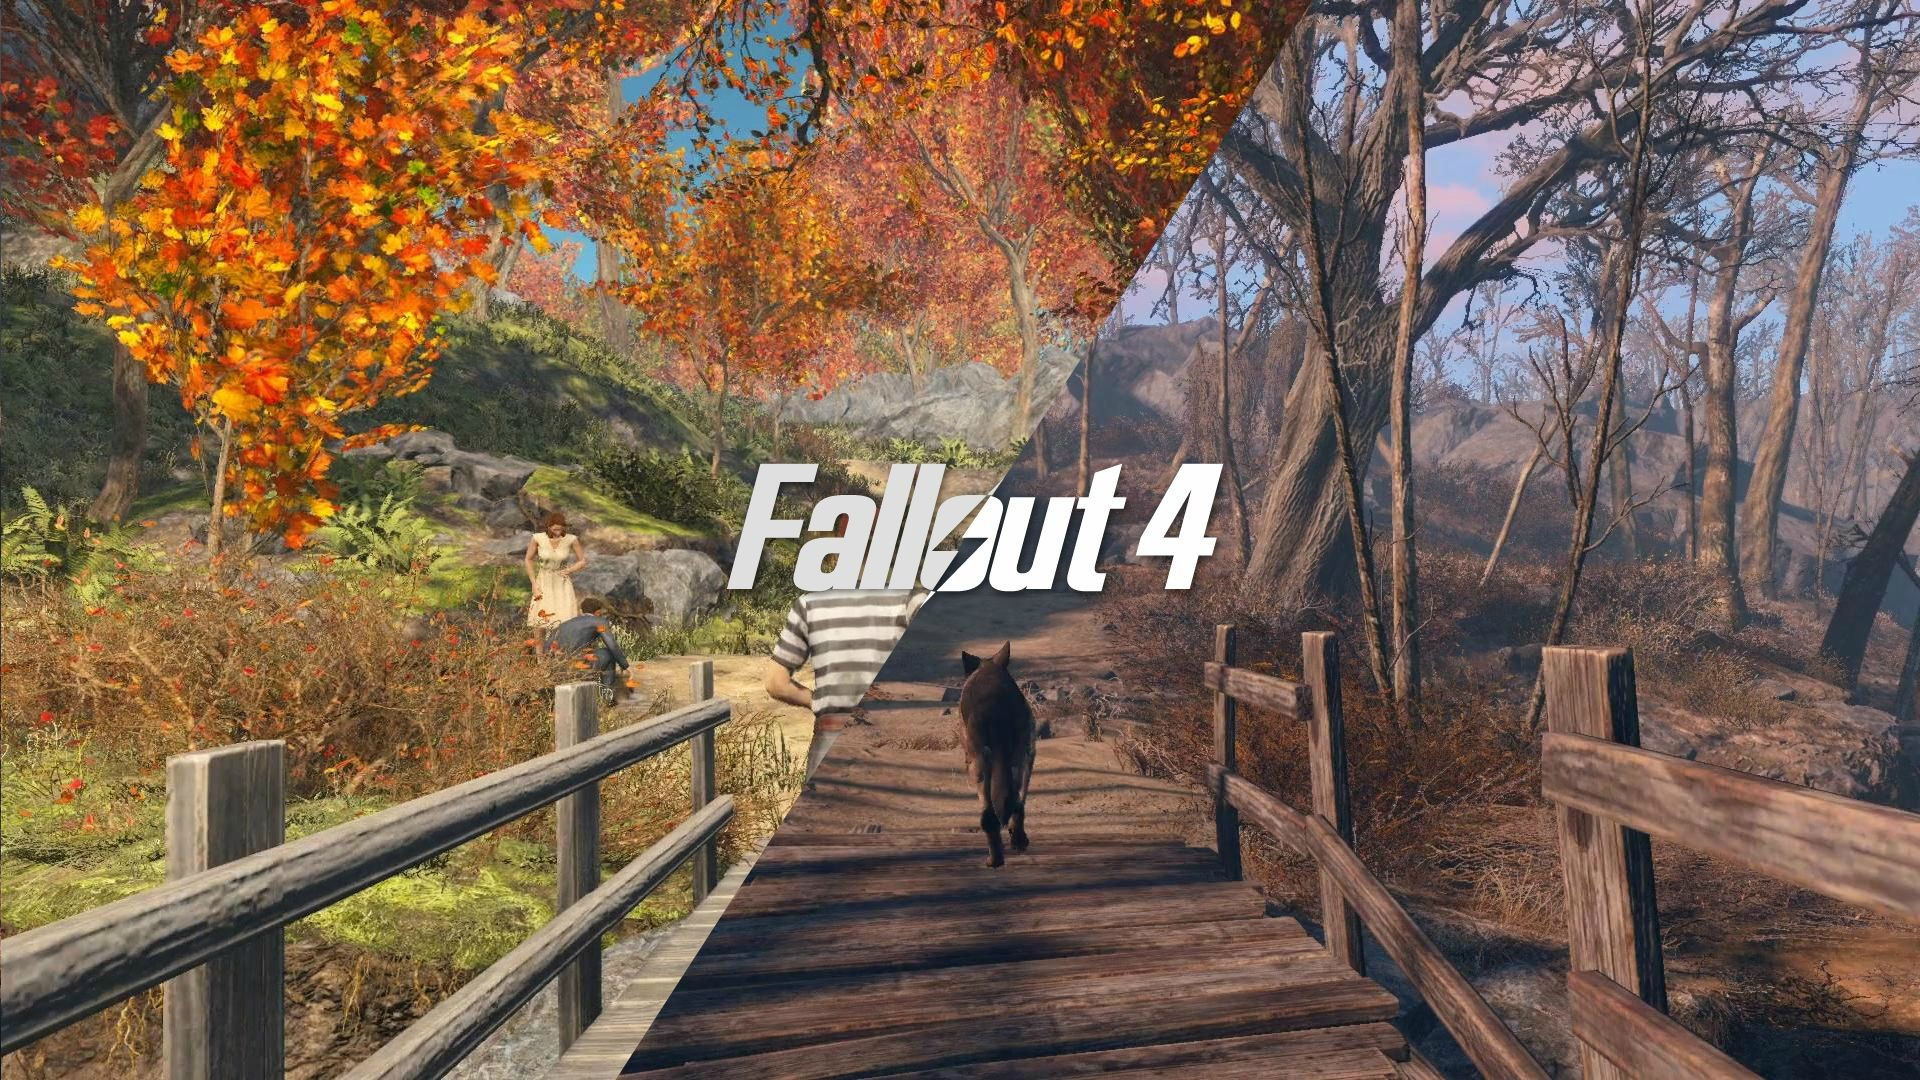 Fallout 4 new wallpapers